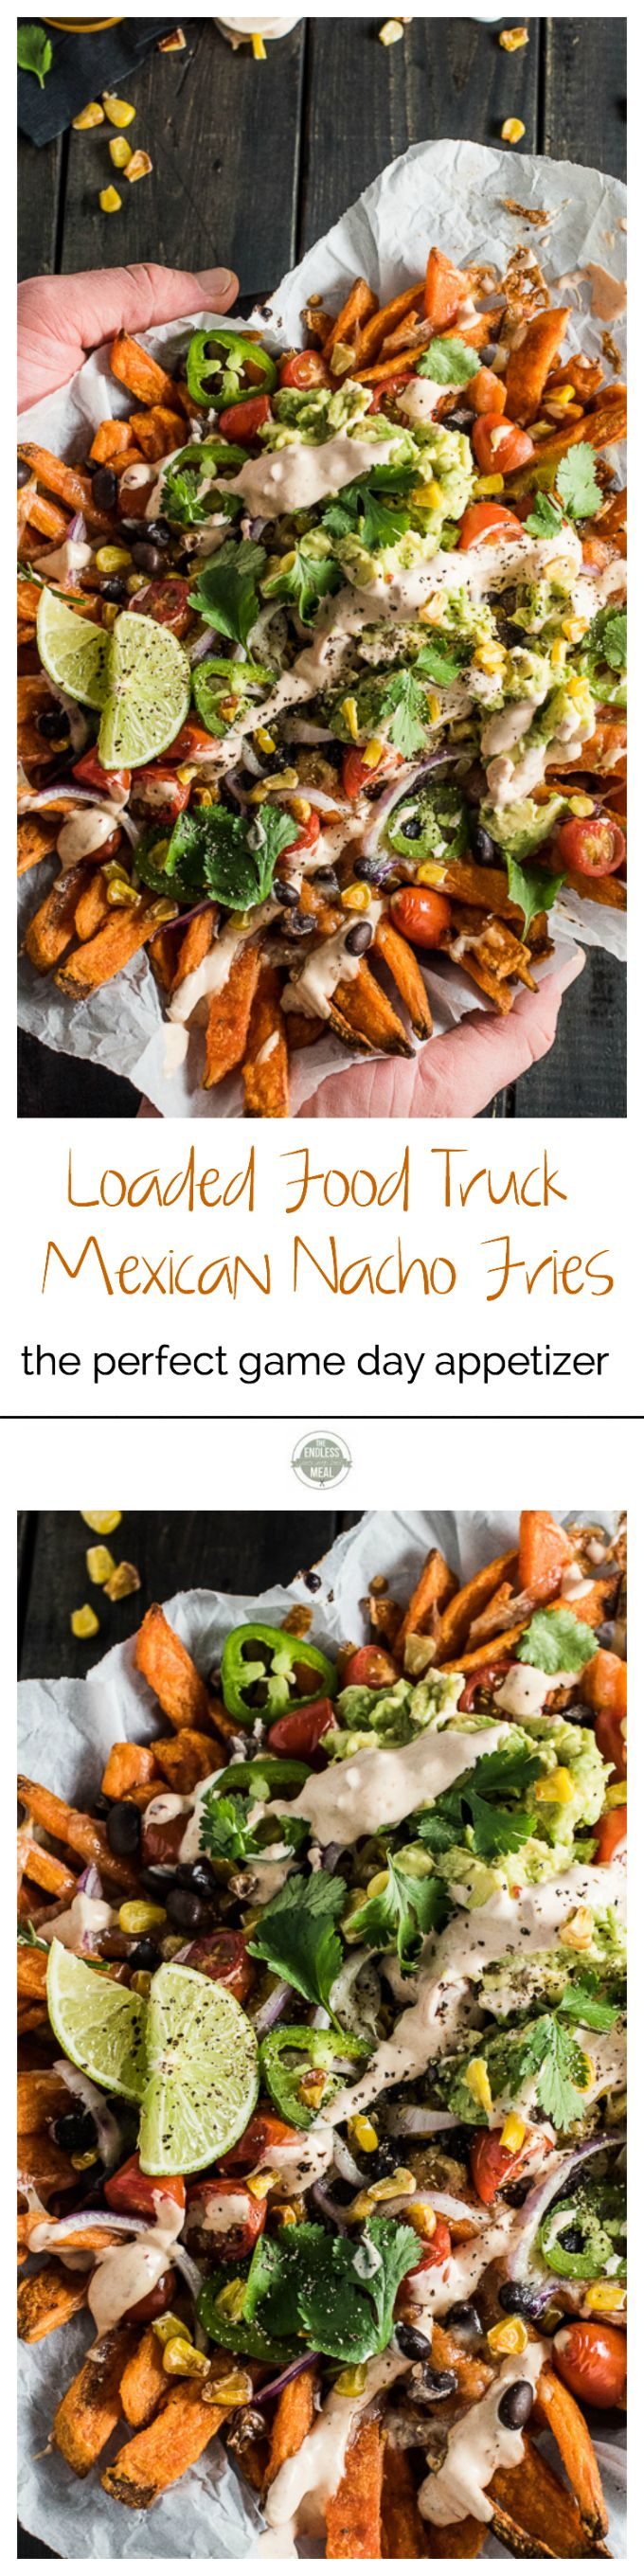 Loaded Food Truck Mexican Nacho Fries | The Endless Meal